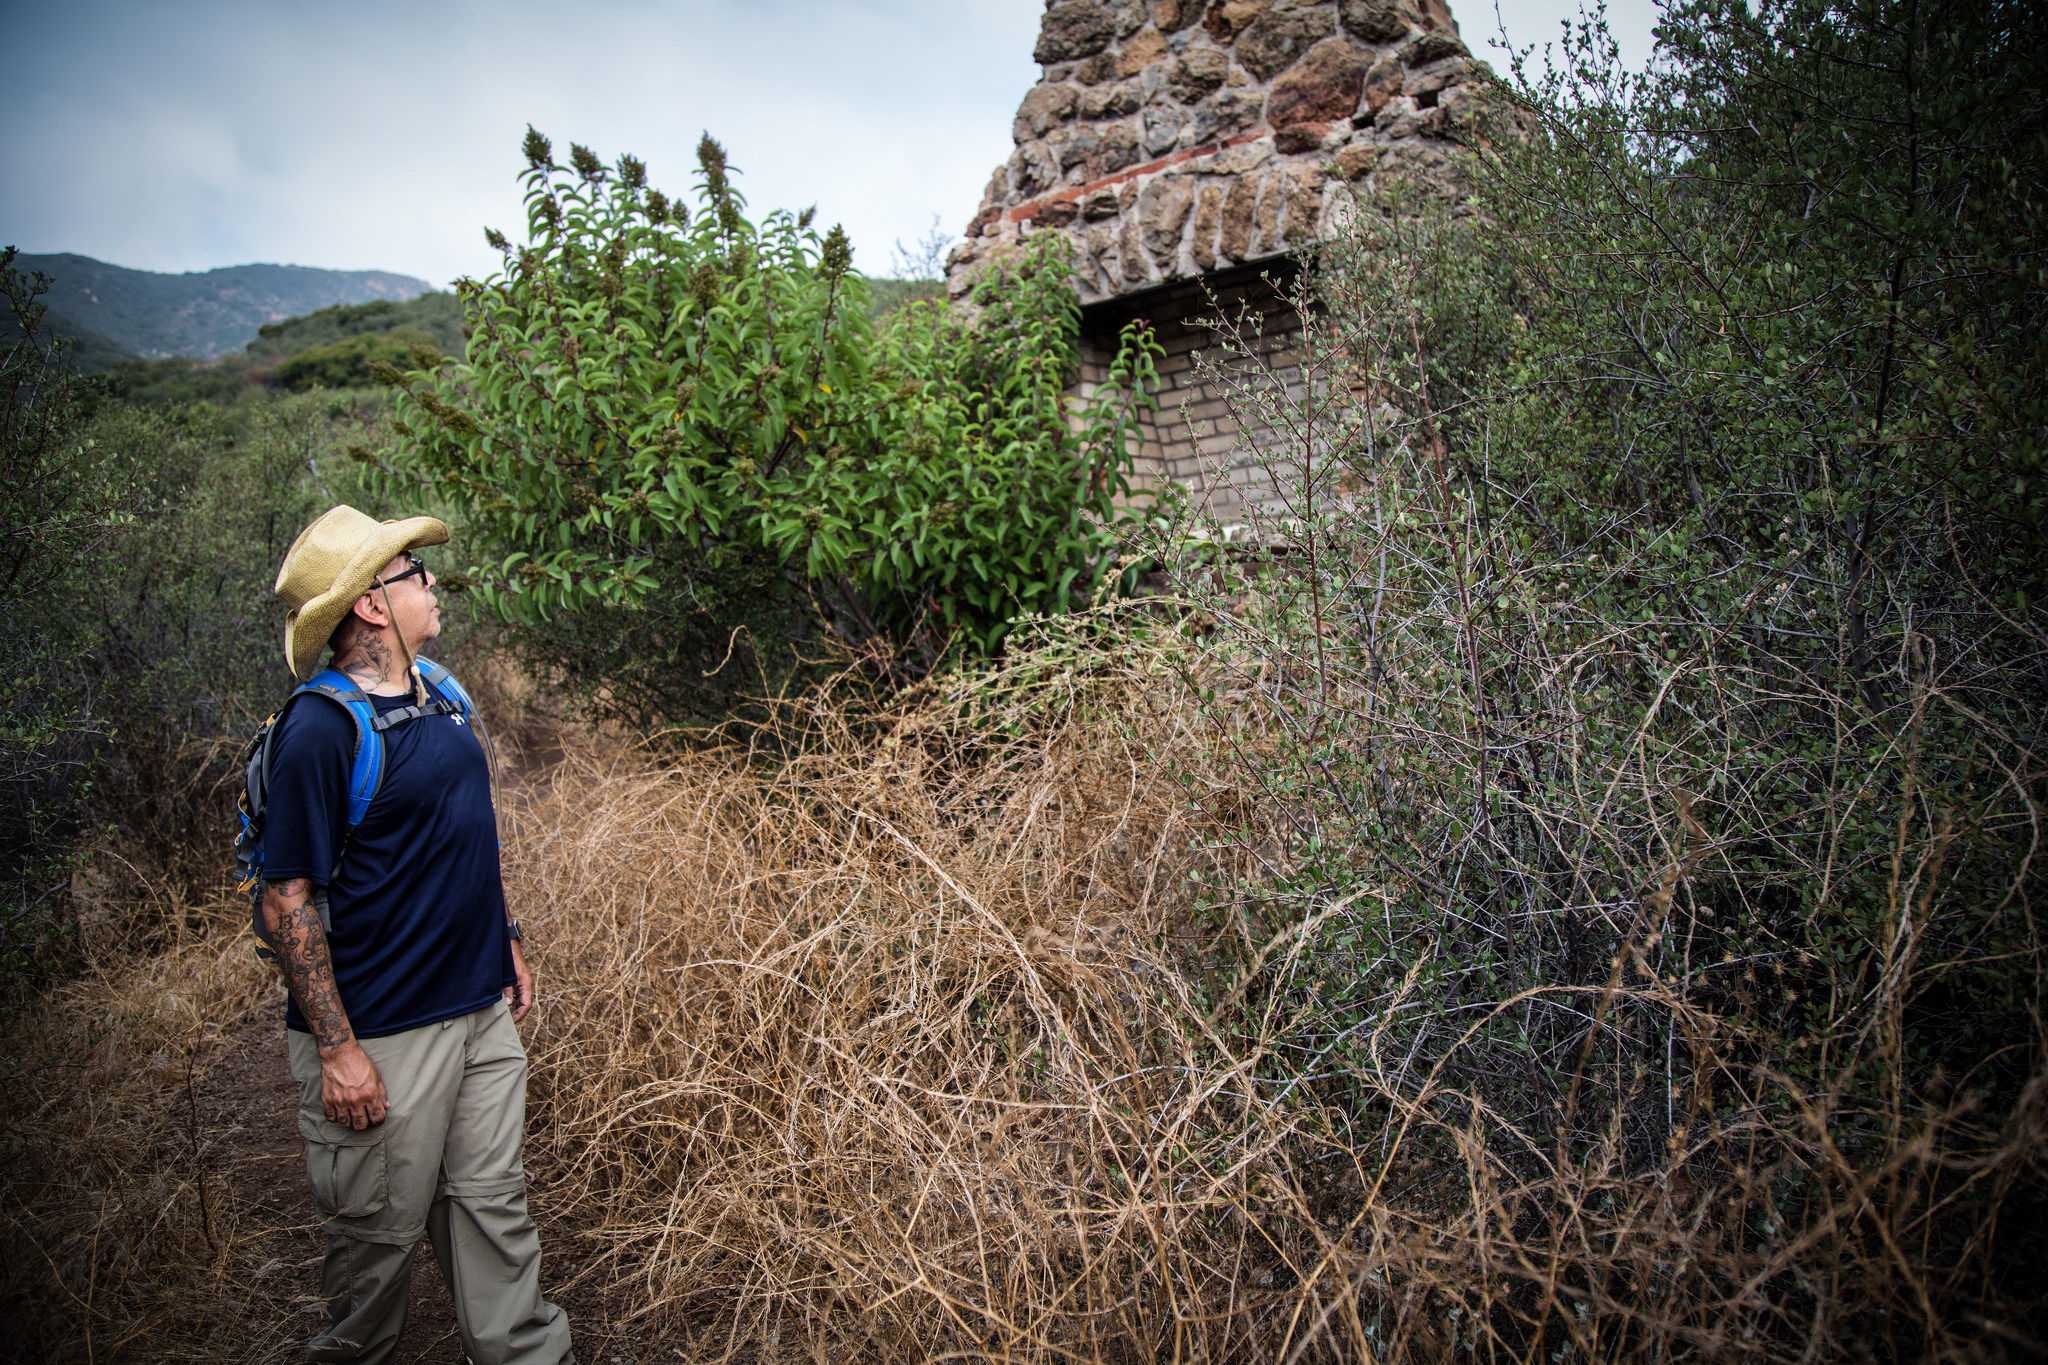 You'll also get to see some ruins on this trail of more homes that burned in the wildfires.